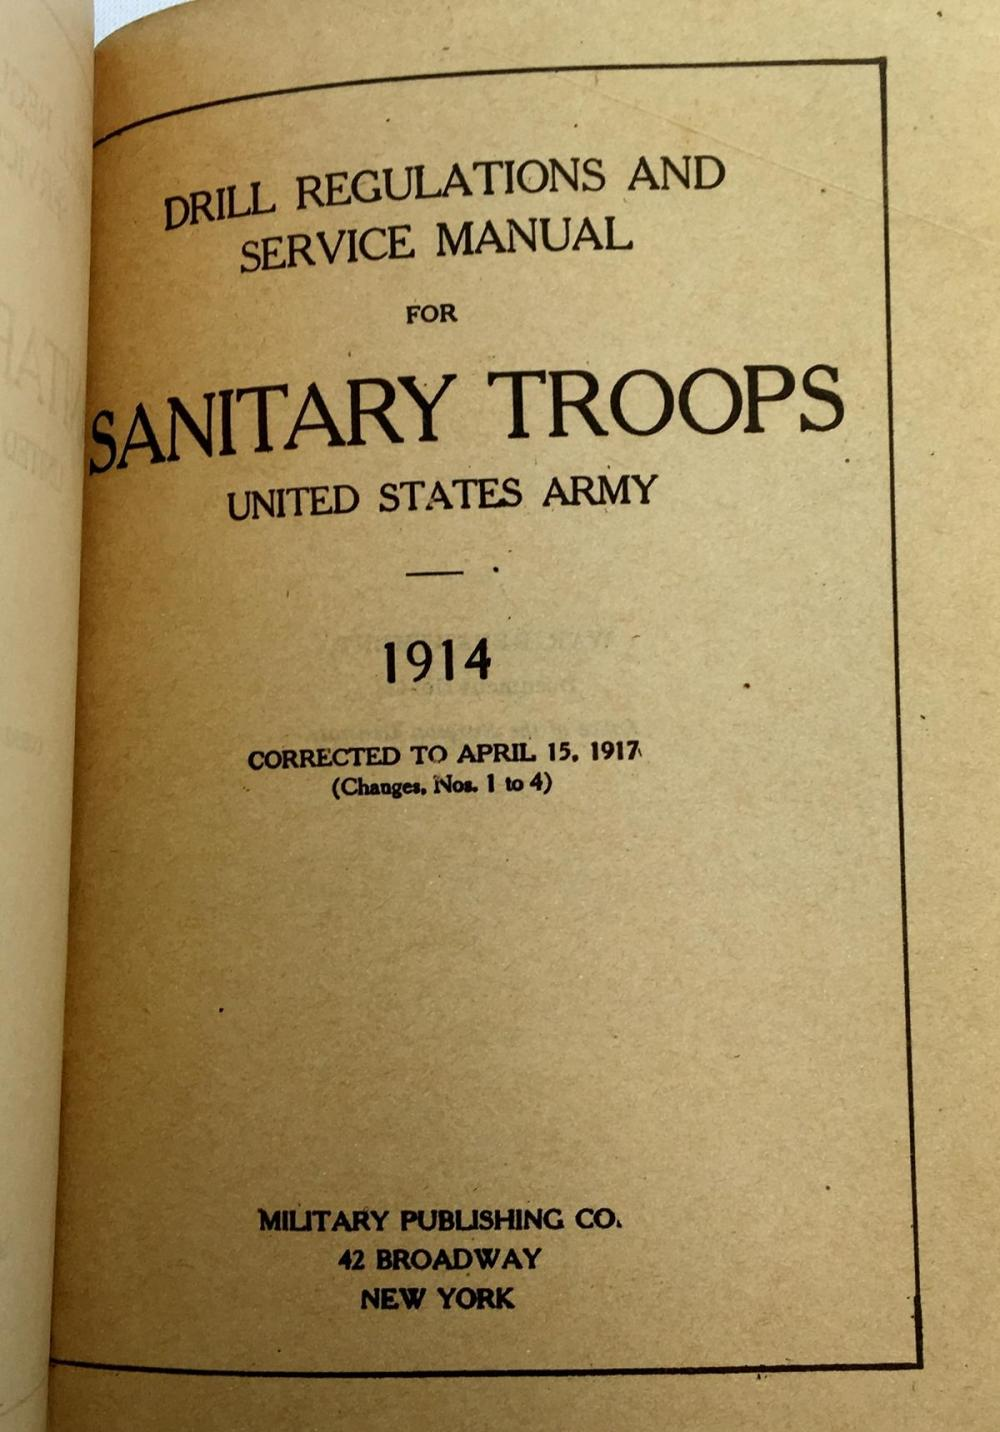 1914 Drill Regulations Manual For Sanitary Troops US Army FIRST EDITION